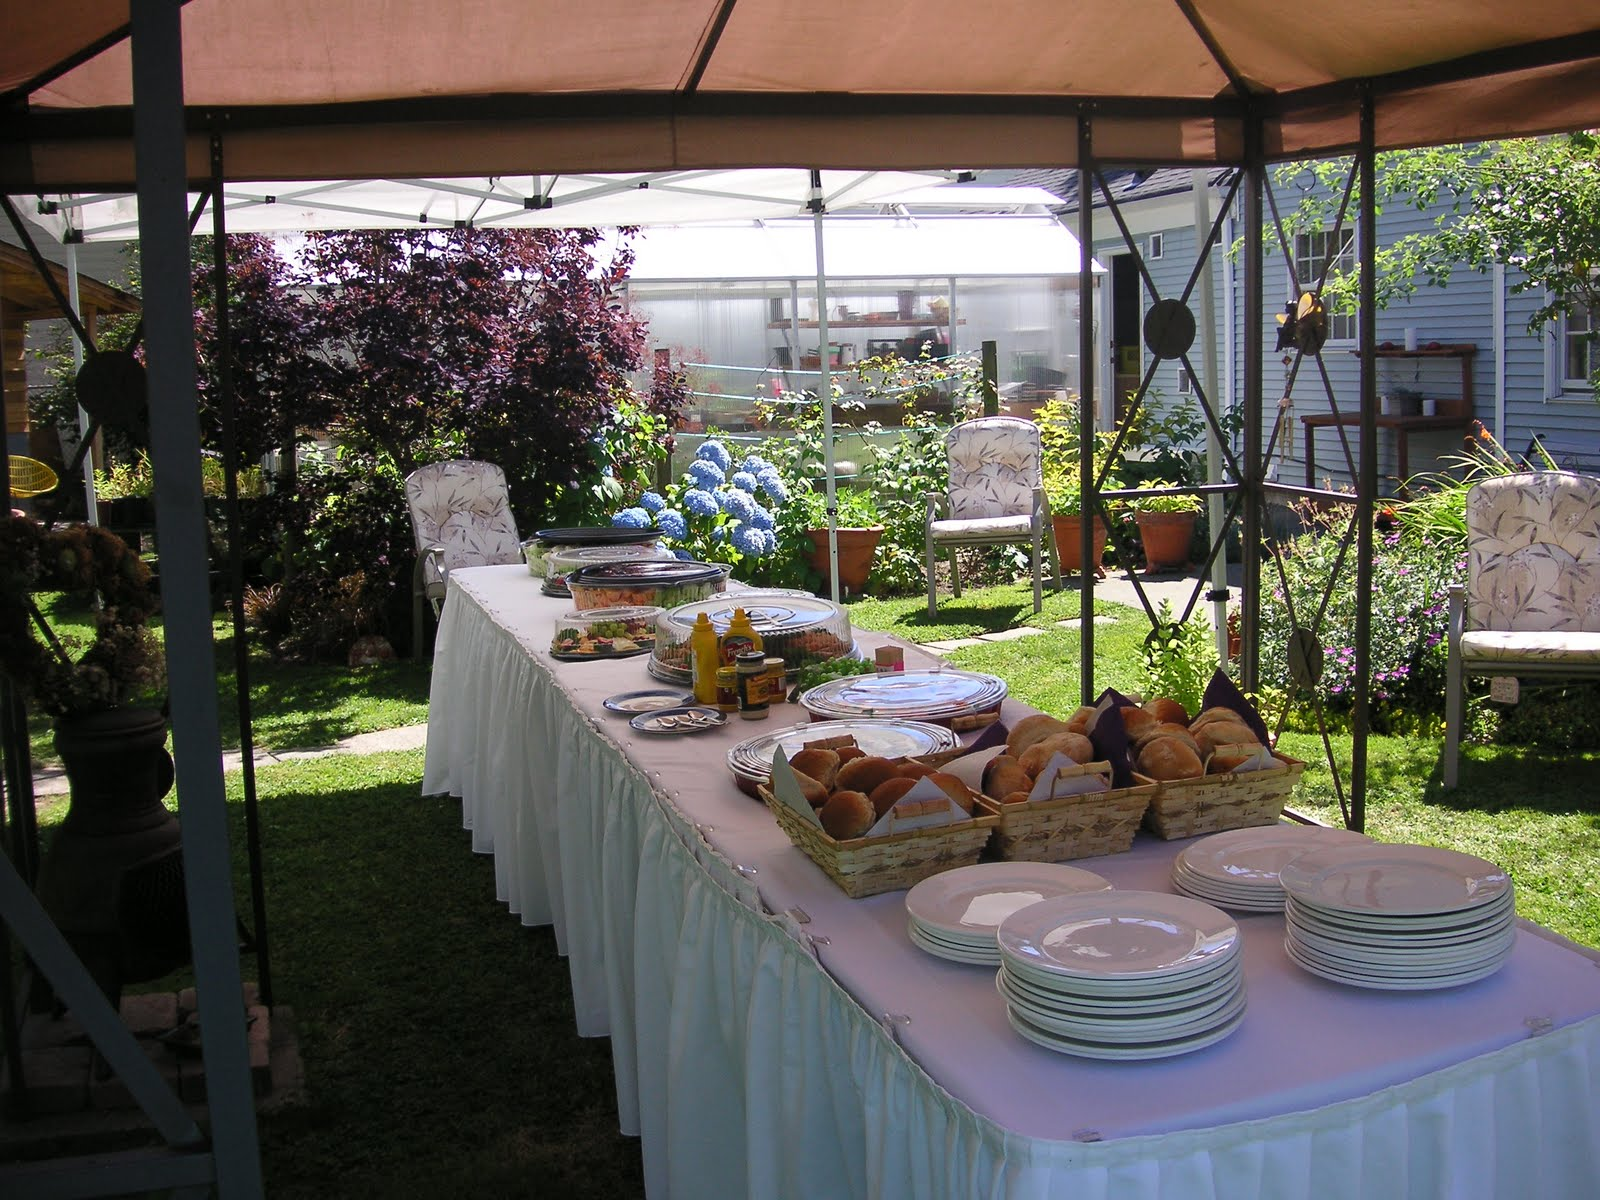 The banquet was set up buffet style under tents in my backyard the